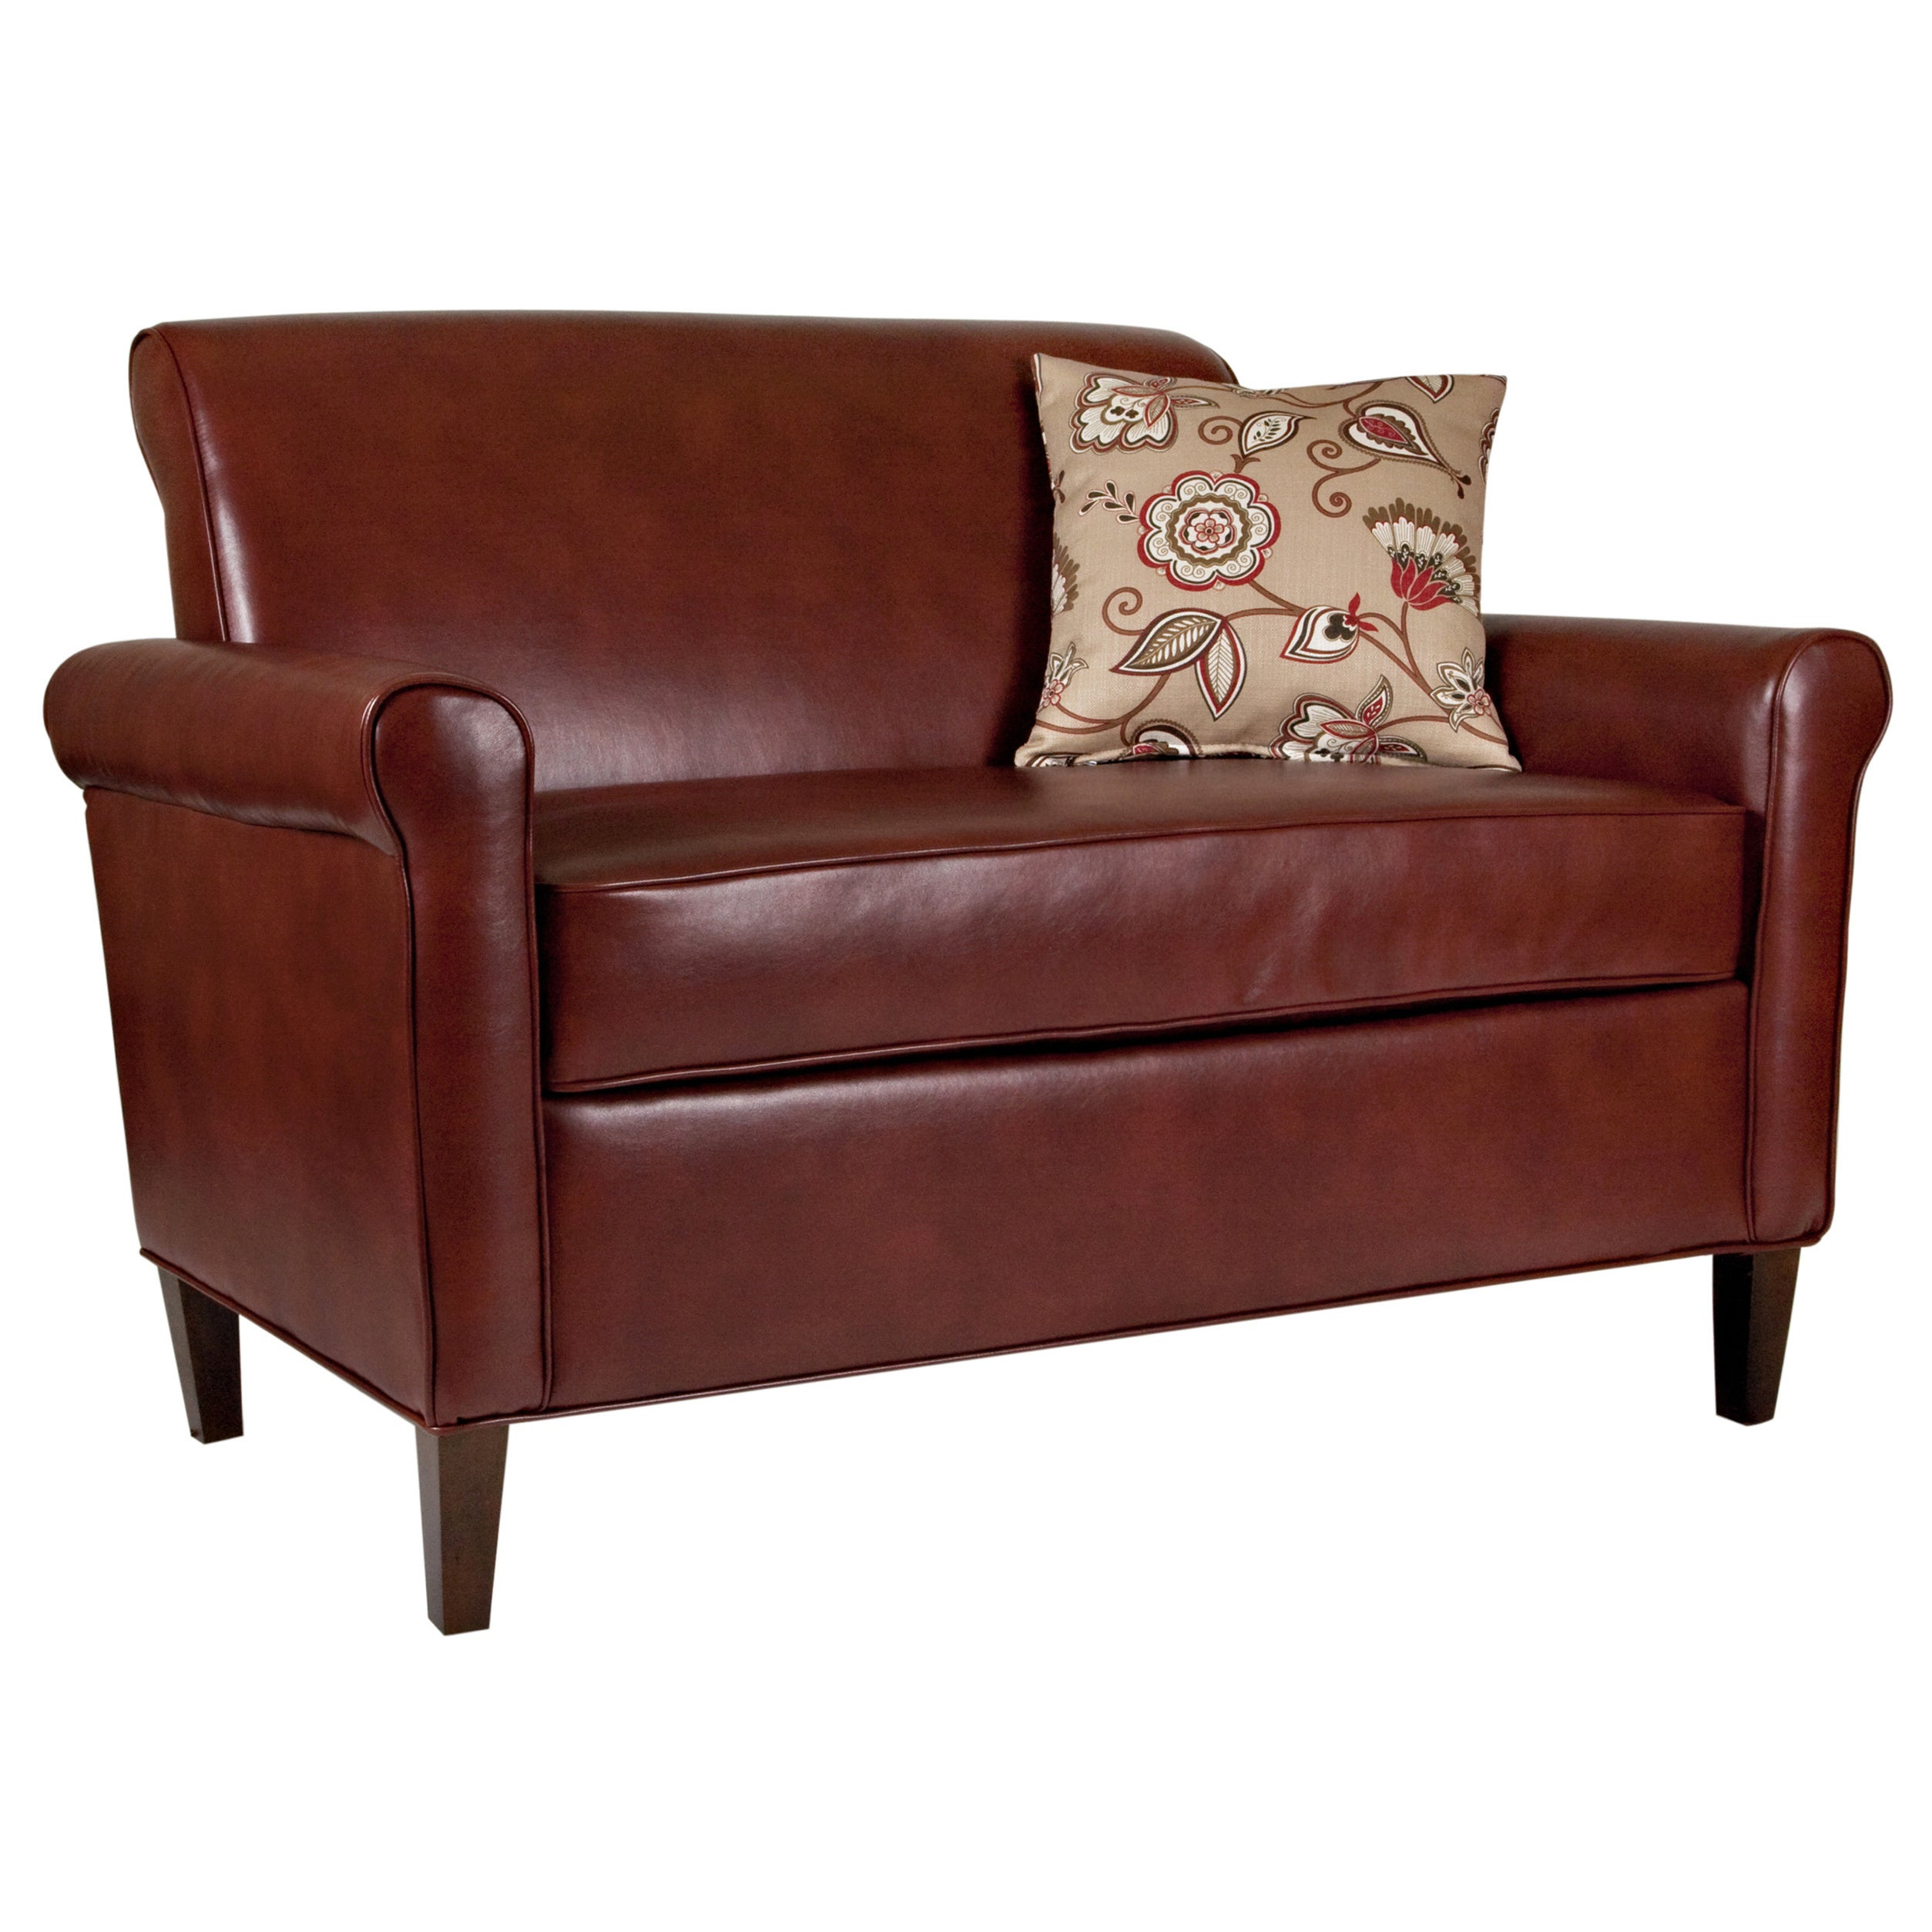 Deep Red Leather Sofas: Angelo:HOME Harlow Deep Wine Red Renu Leather Loveseat